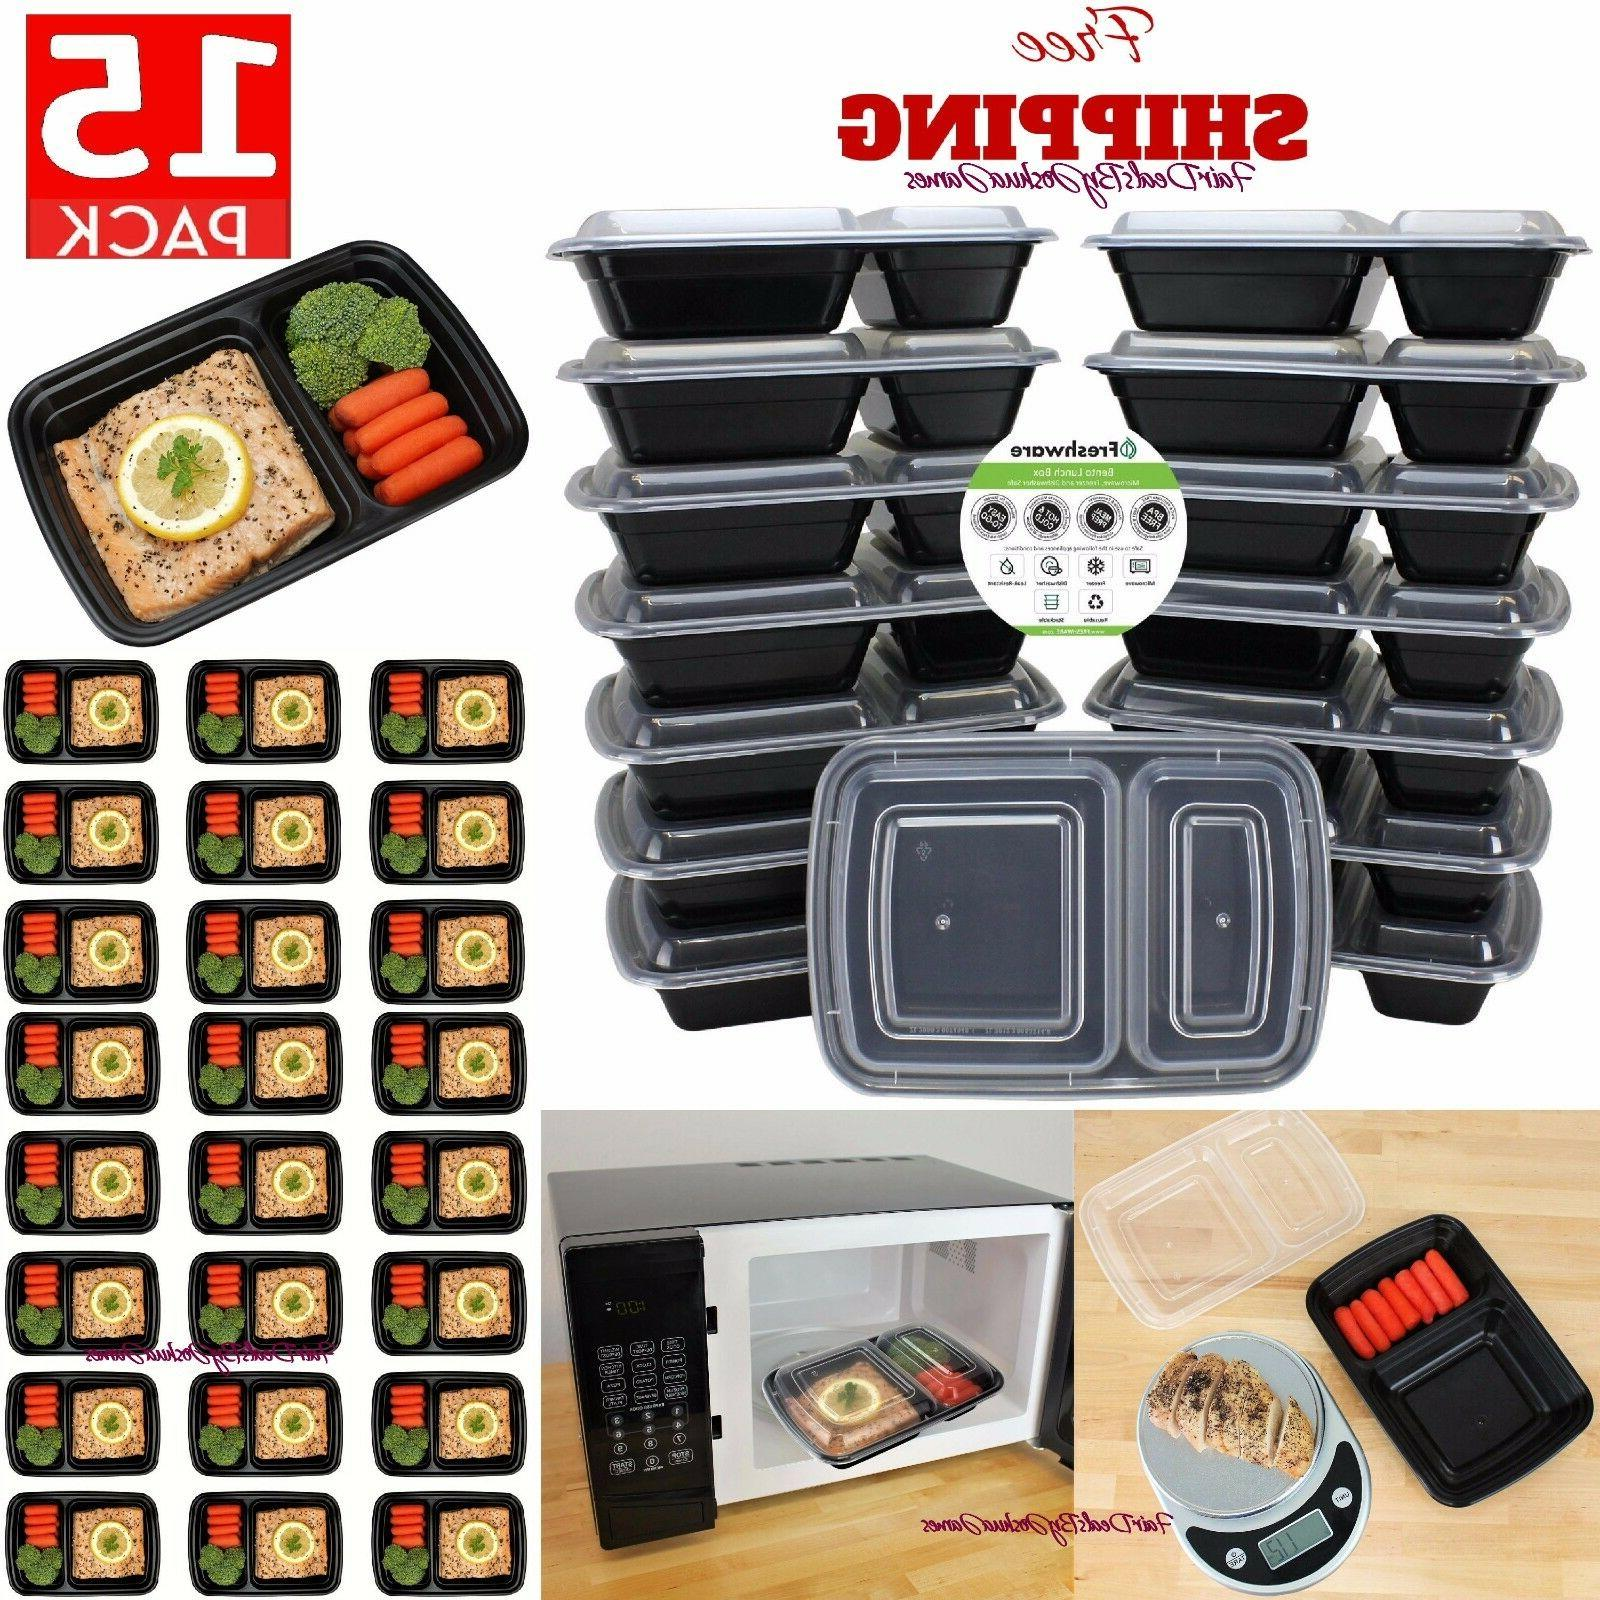 15 Meal Prep Containers Plastic Food Storage Reusable Microw